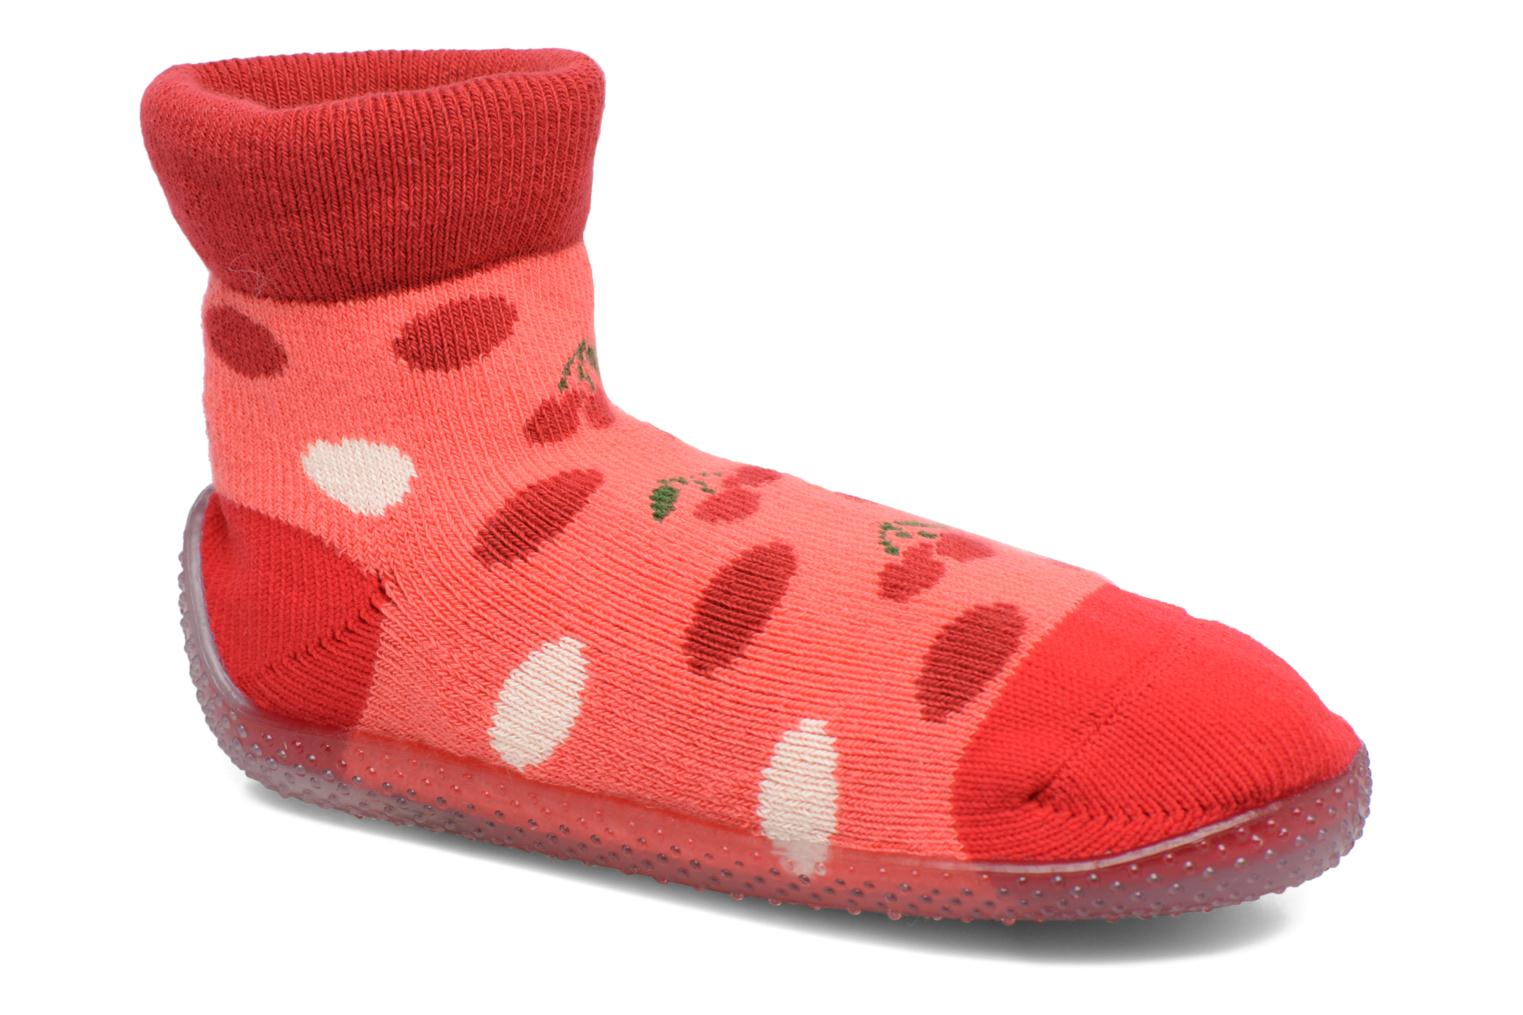 Chaussons Chaussettes POP  Slippers Cherry